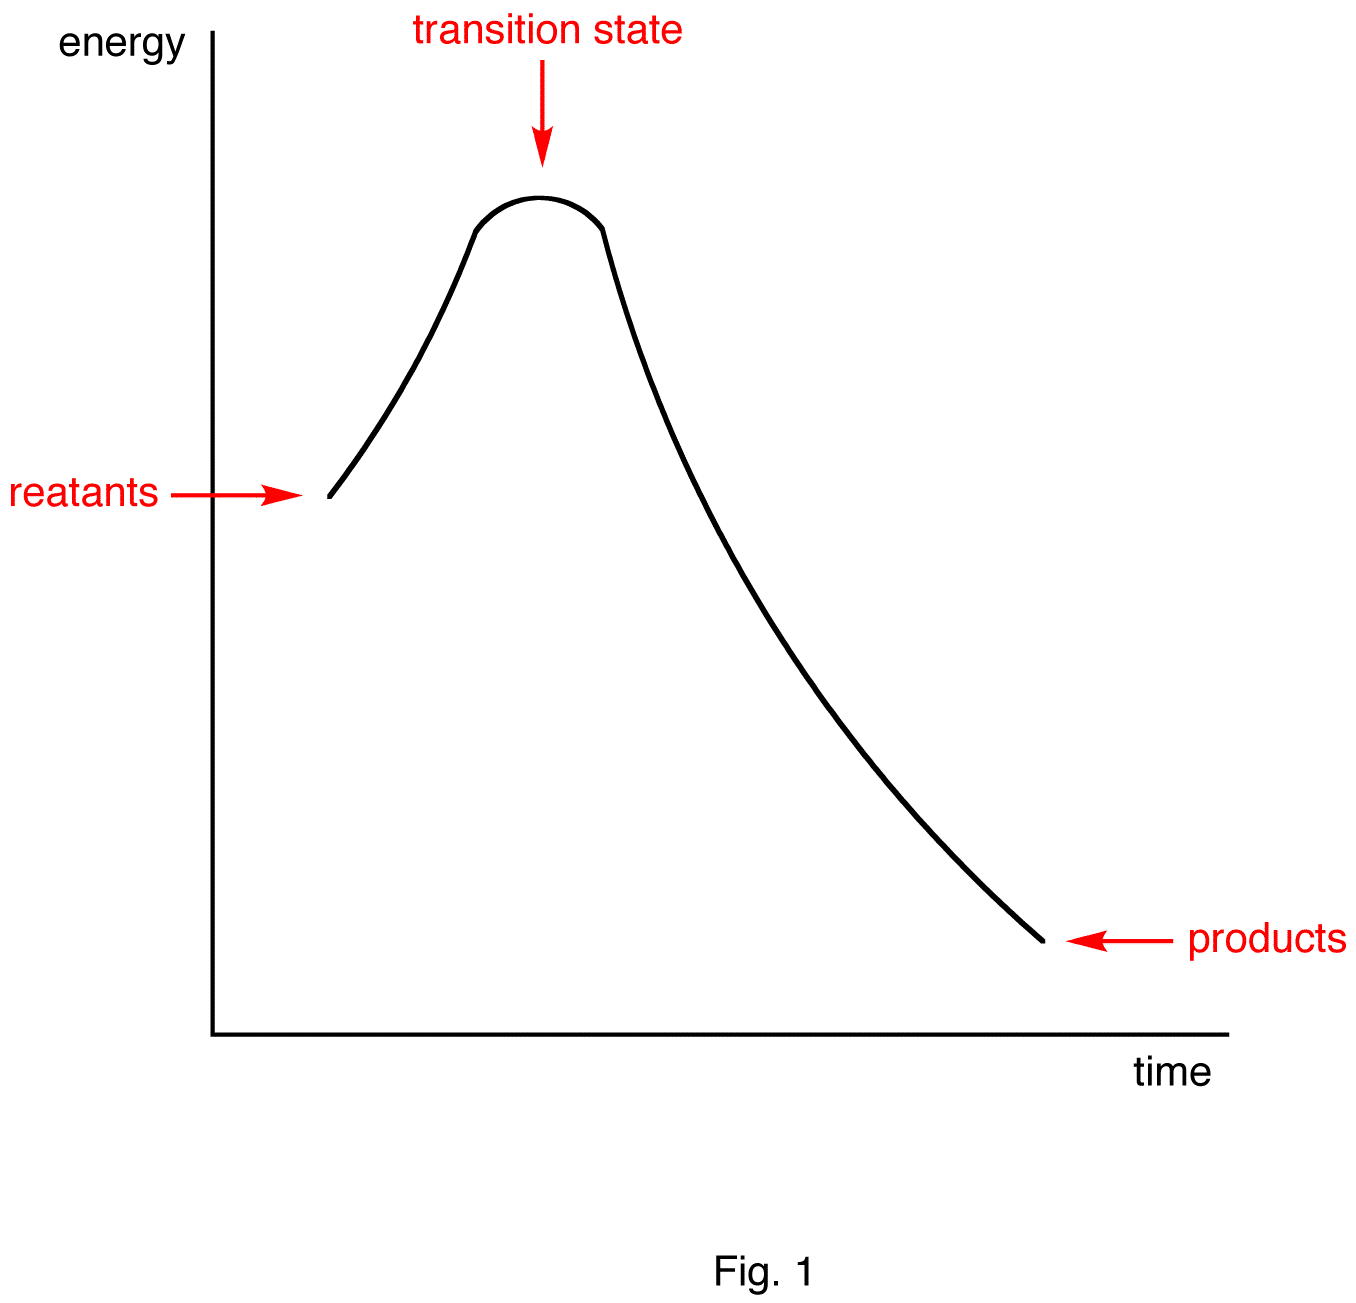 Hammonds postulate ochempal in an endothermic reaction the transition state is closer to the products than to the reactants in energy fig 2 therefore according to hammonds pooptronica Images